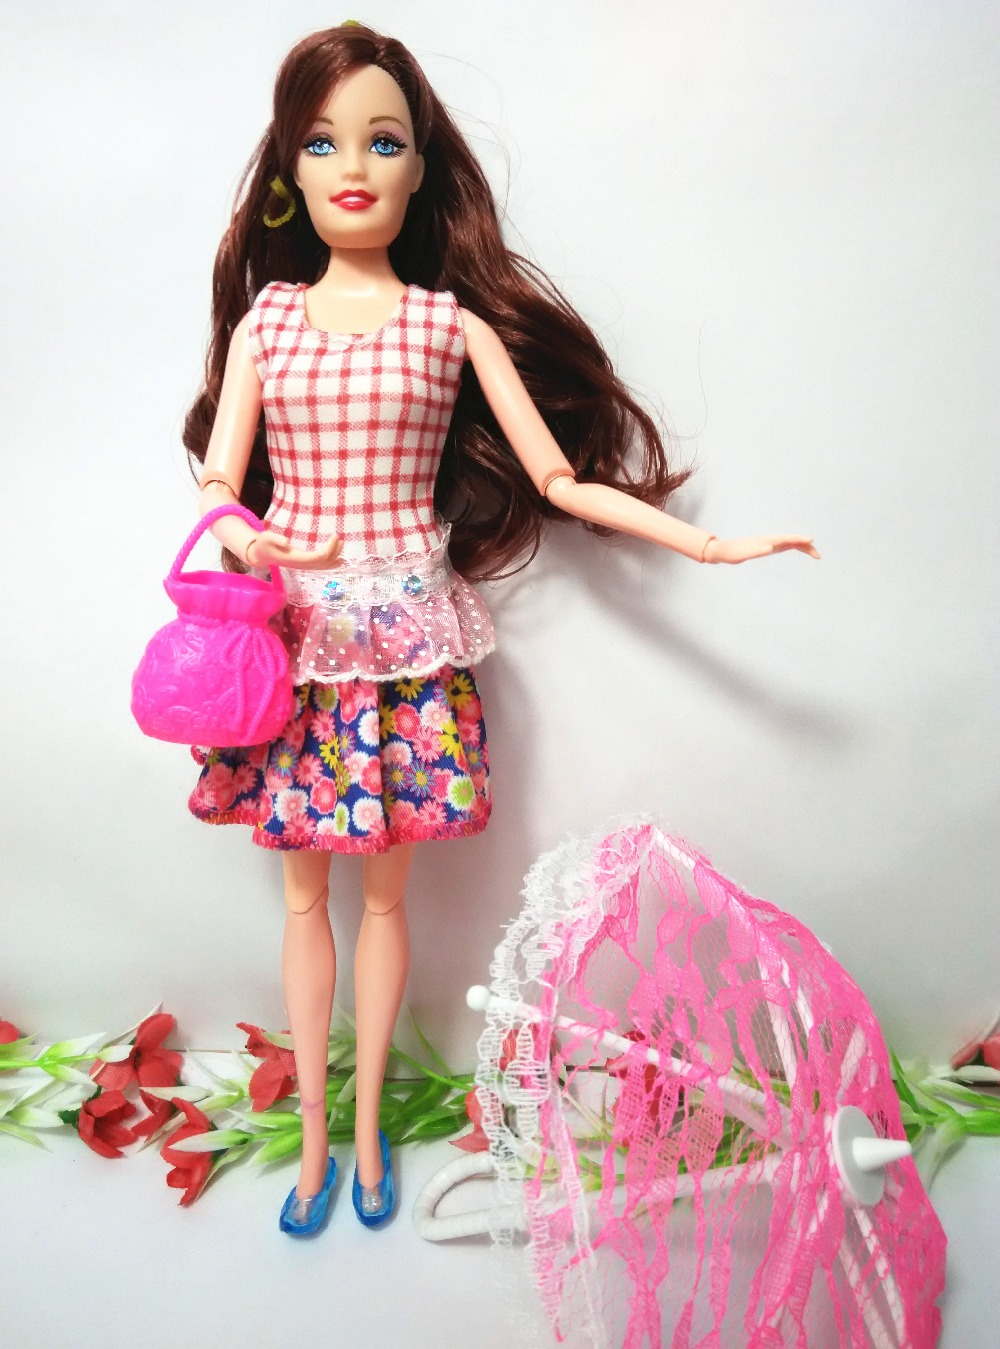 (Style Doll + bag + Toy umbrella) Dolls Mannequin Fashion Moveable Joint Physique Traditional Toys Greatest Reward Equipment For Barbie,YF-01